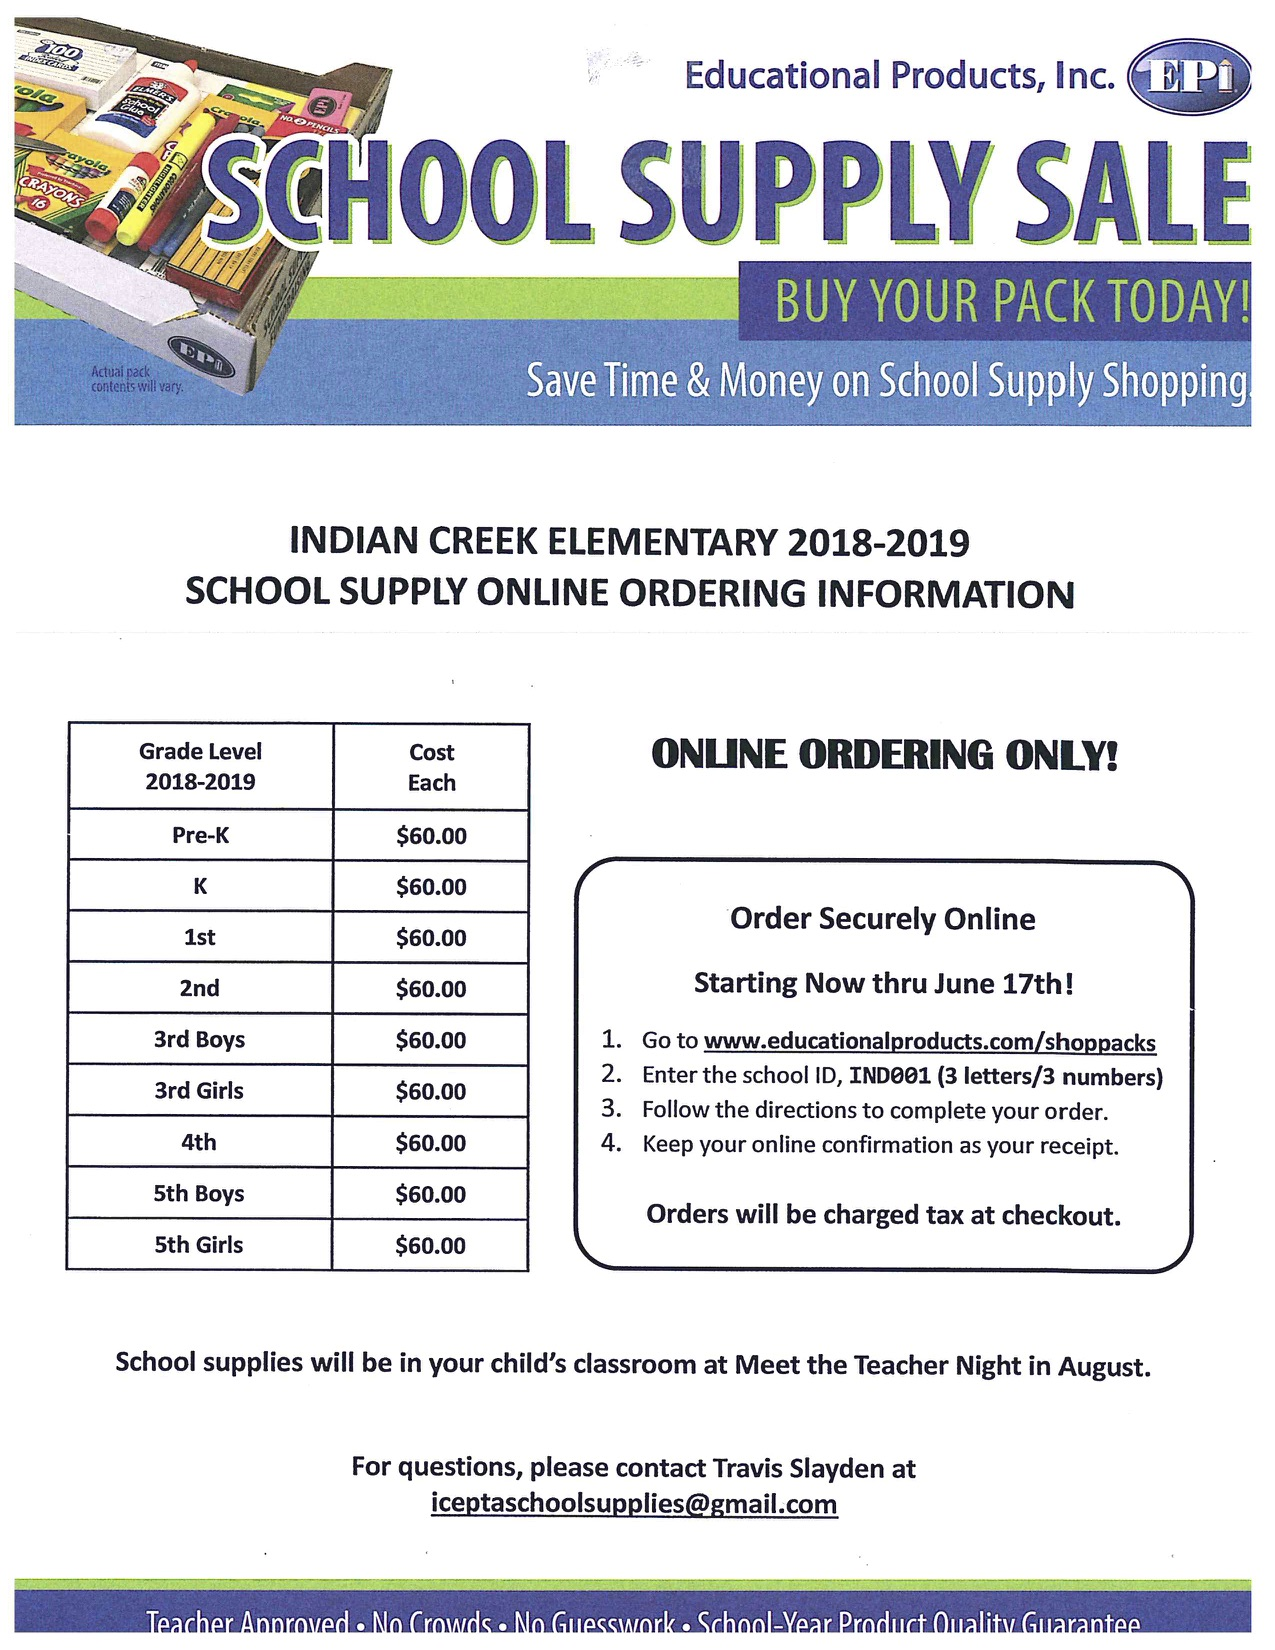 Don't forget to order your school supplies for next year!